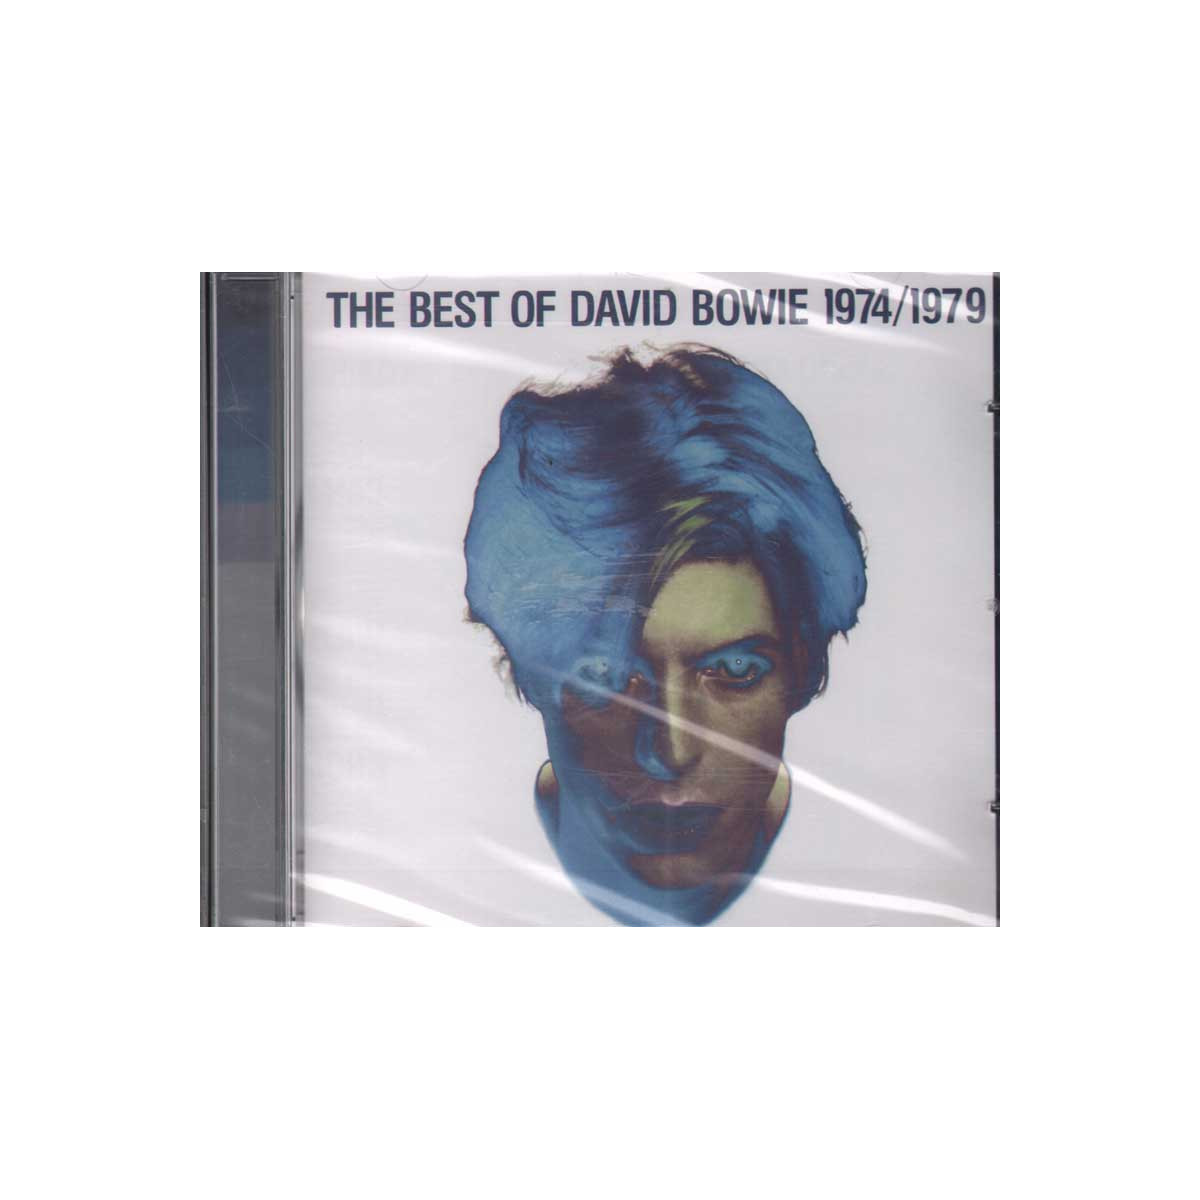 David Bowie CD The Best Of David Bowie 1974/1979 Nuovo Sigillato 0724349430020